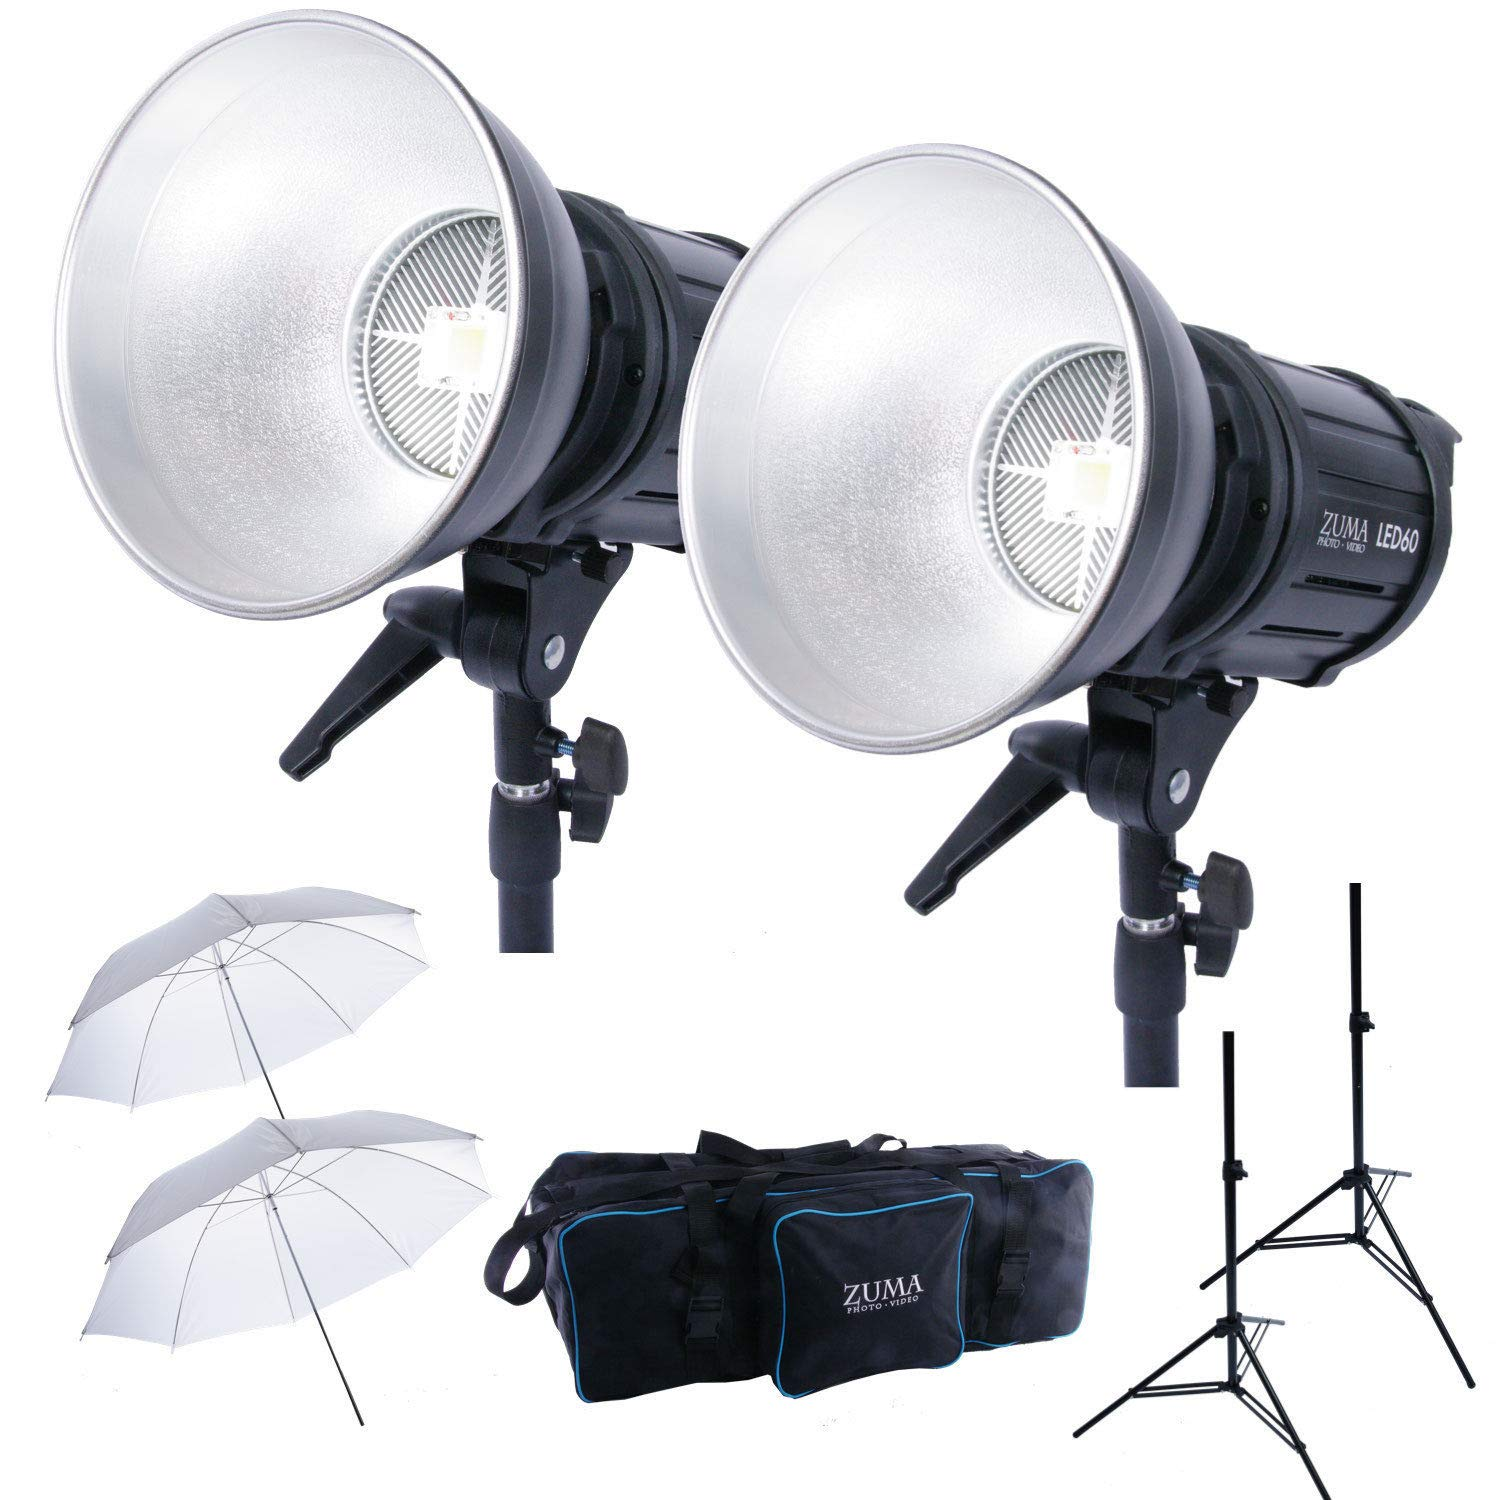 LED 60W Photo Video Studio Lighting Kit w/Umbrellas Stands Carry Case Dimmer by Zuma